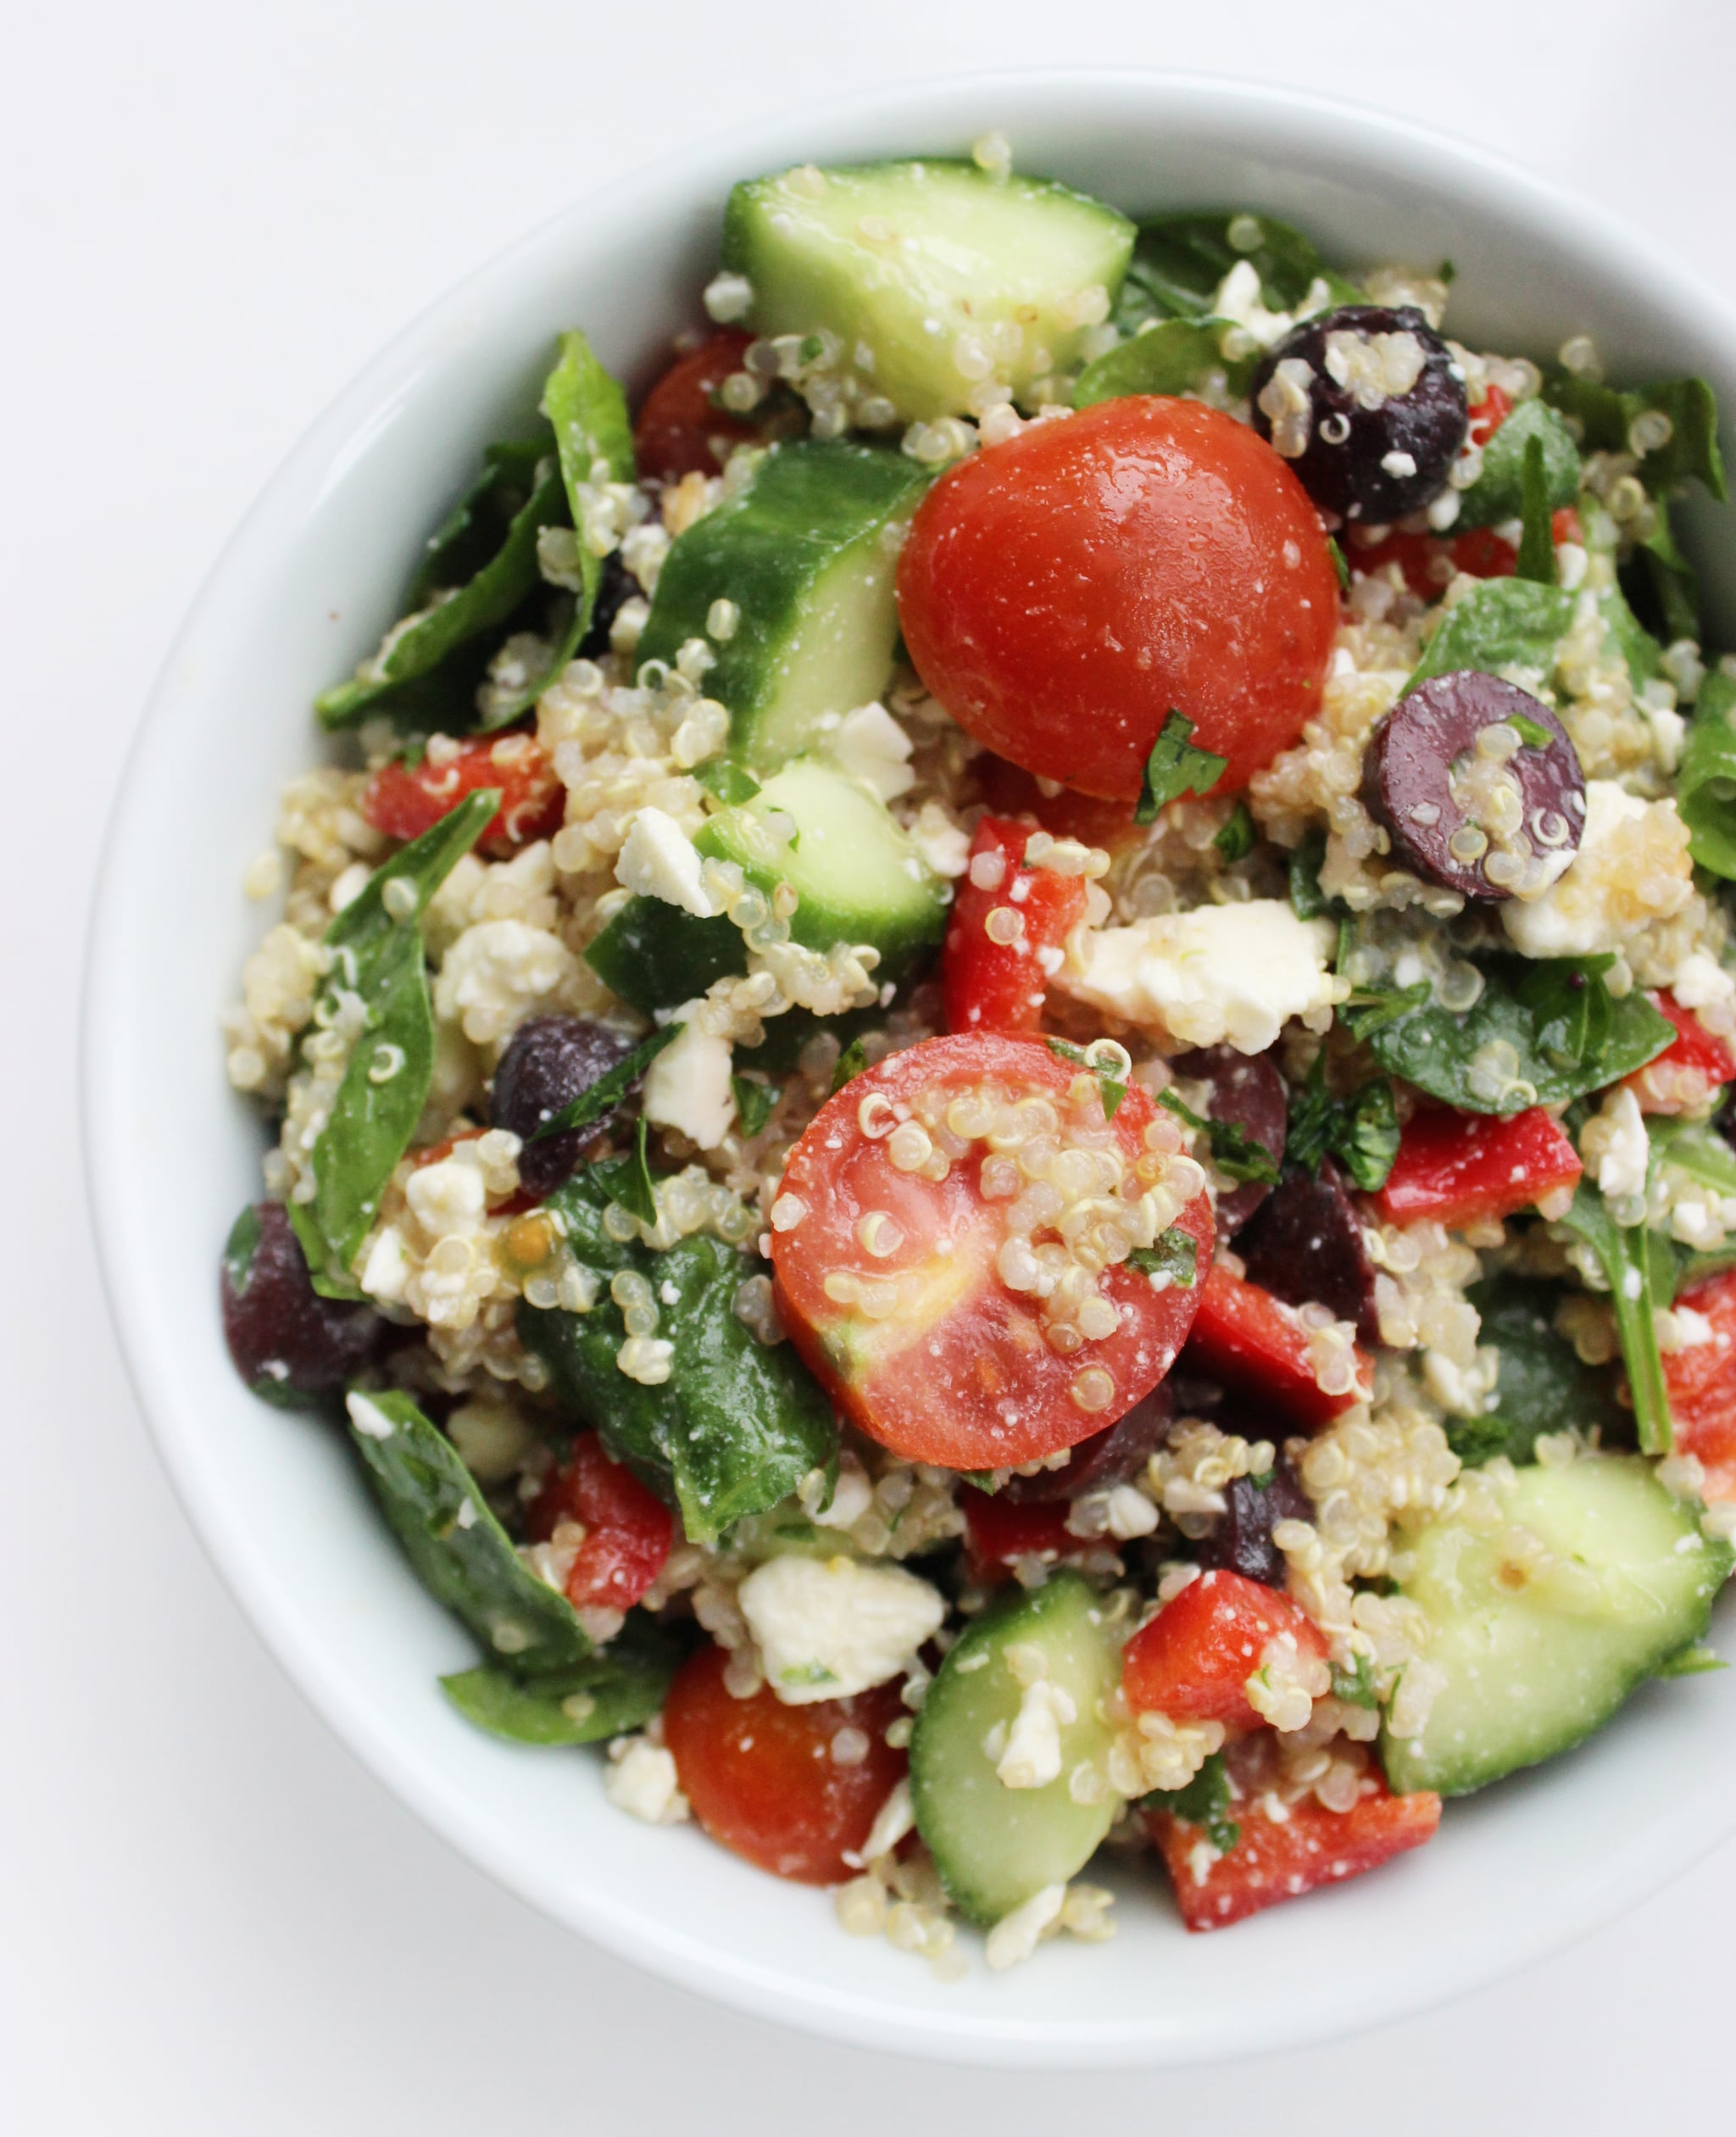 A Vegetarian Quinoa Salad With Over 15 Grams of Protein